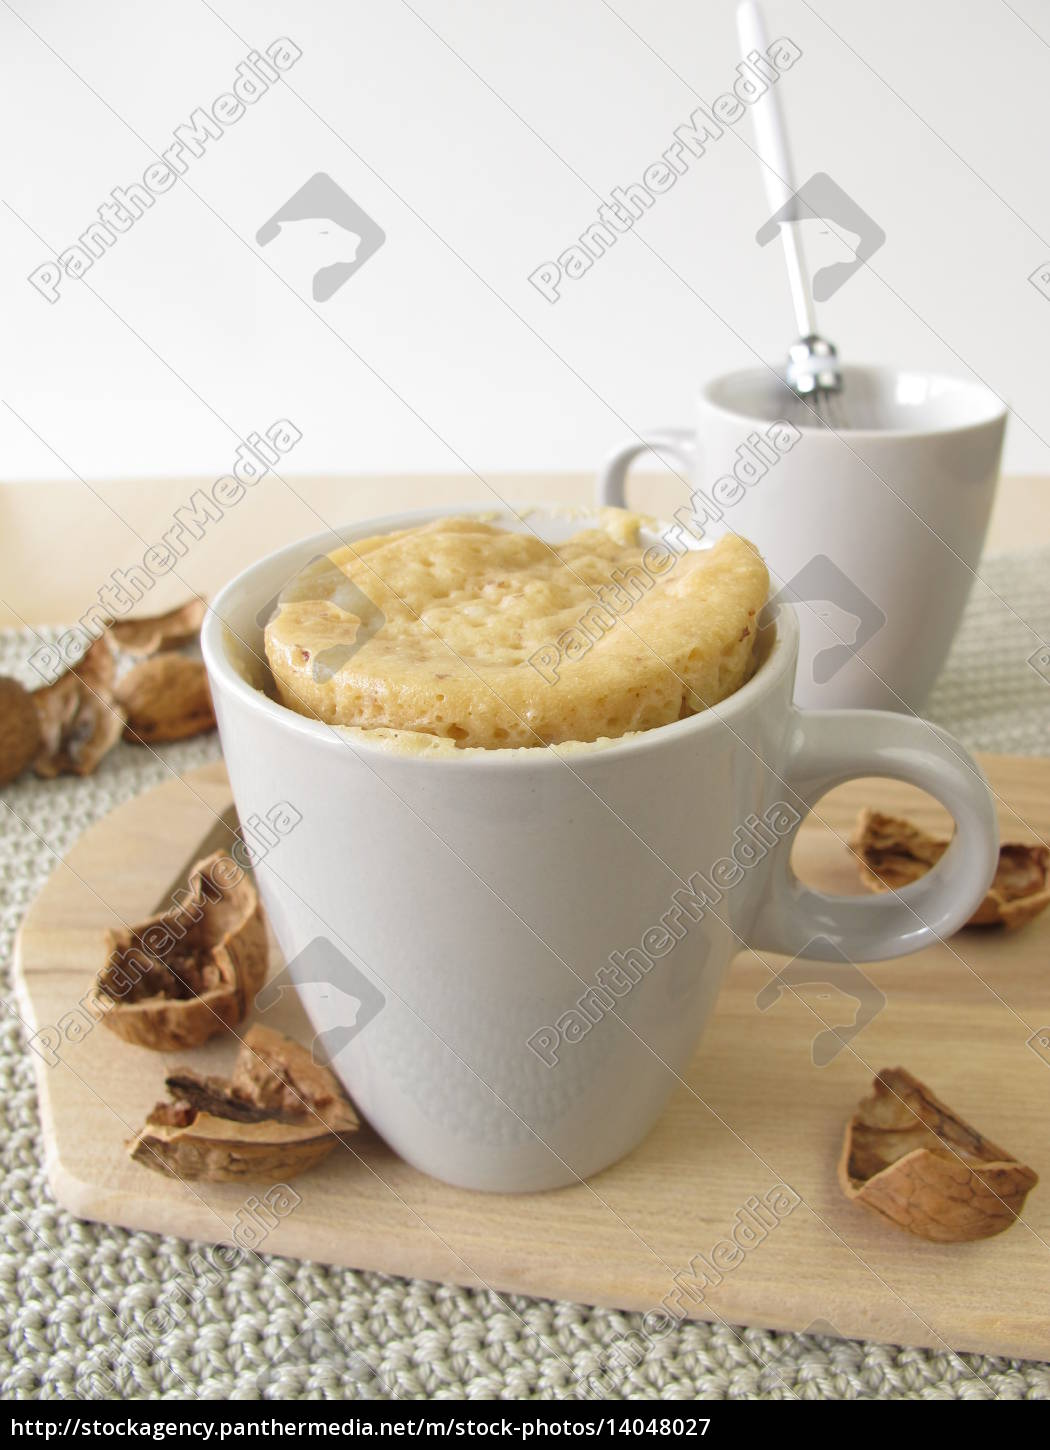 mug, cake, with, walnuts, from, the - 14048027